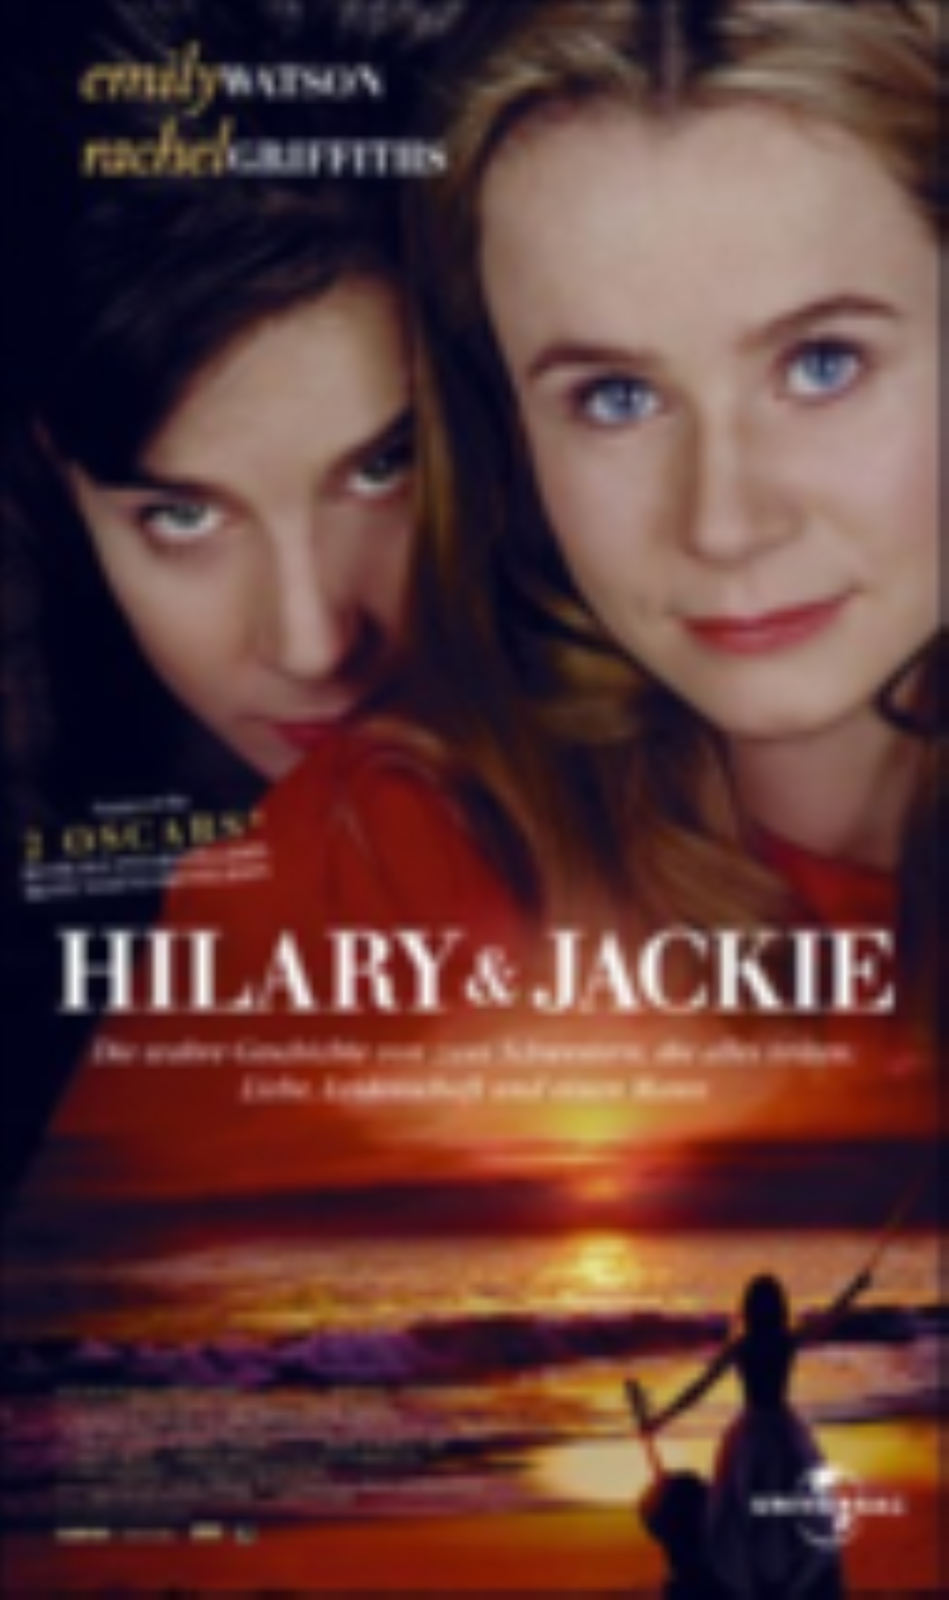 Hilary and Jackie  Vhs